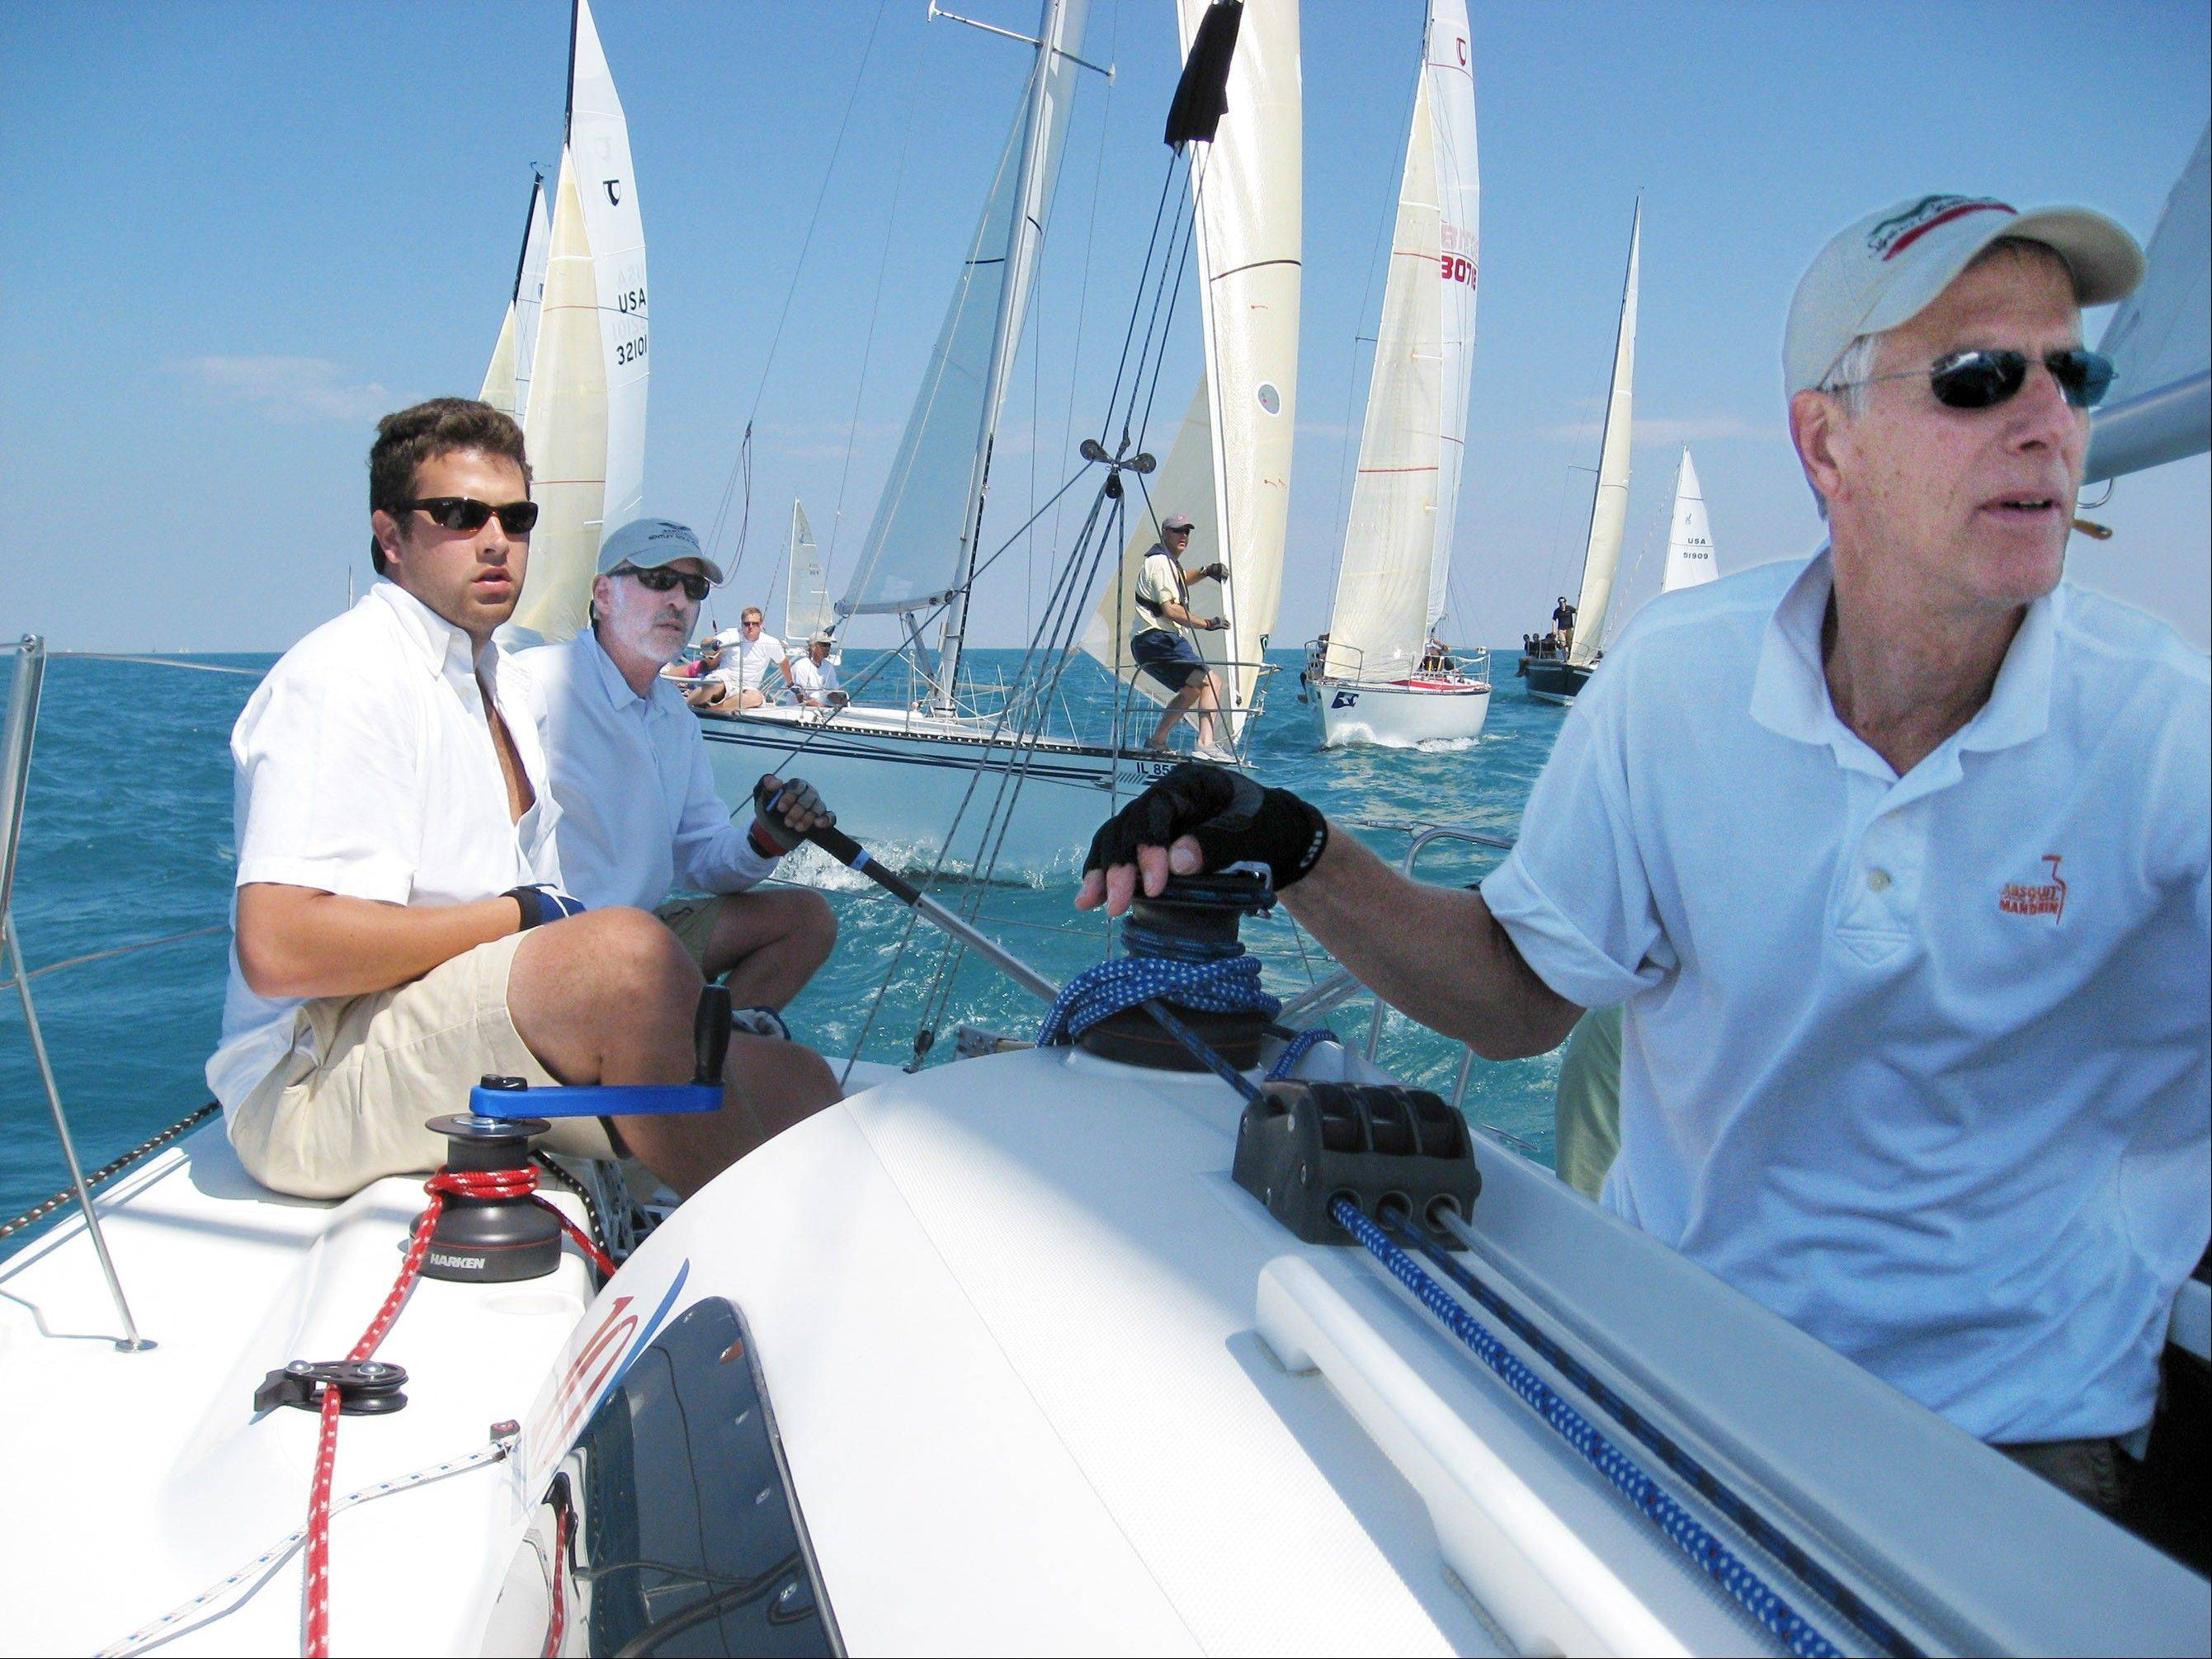 From left, Chris McNicholas, David Finlay and Tom Verhey sail the Jing Bang.